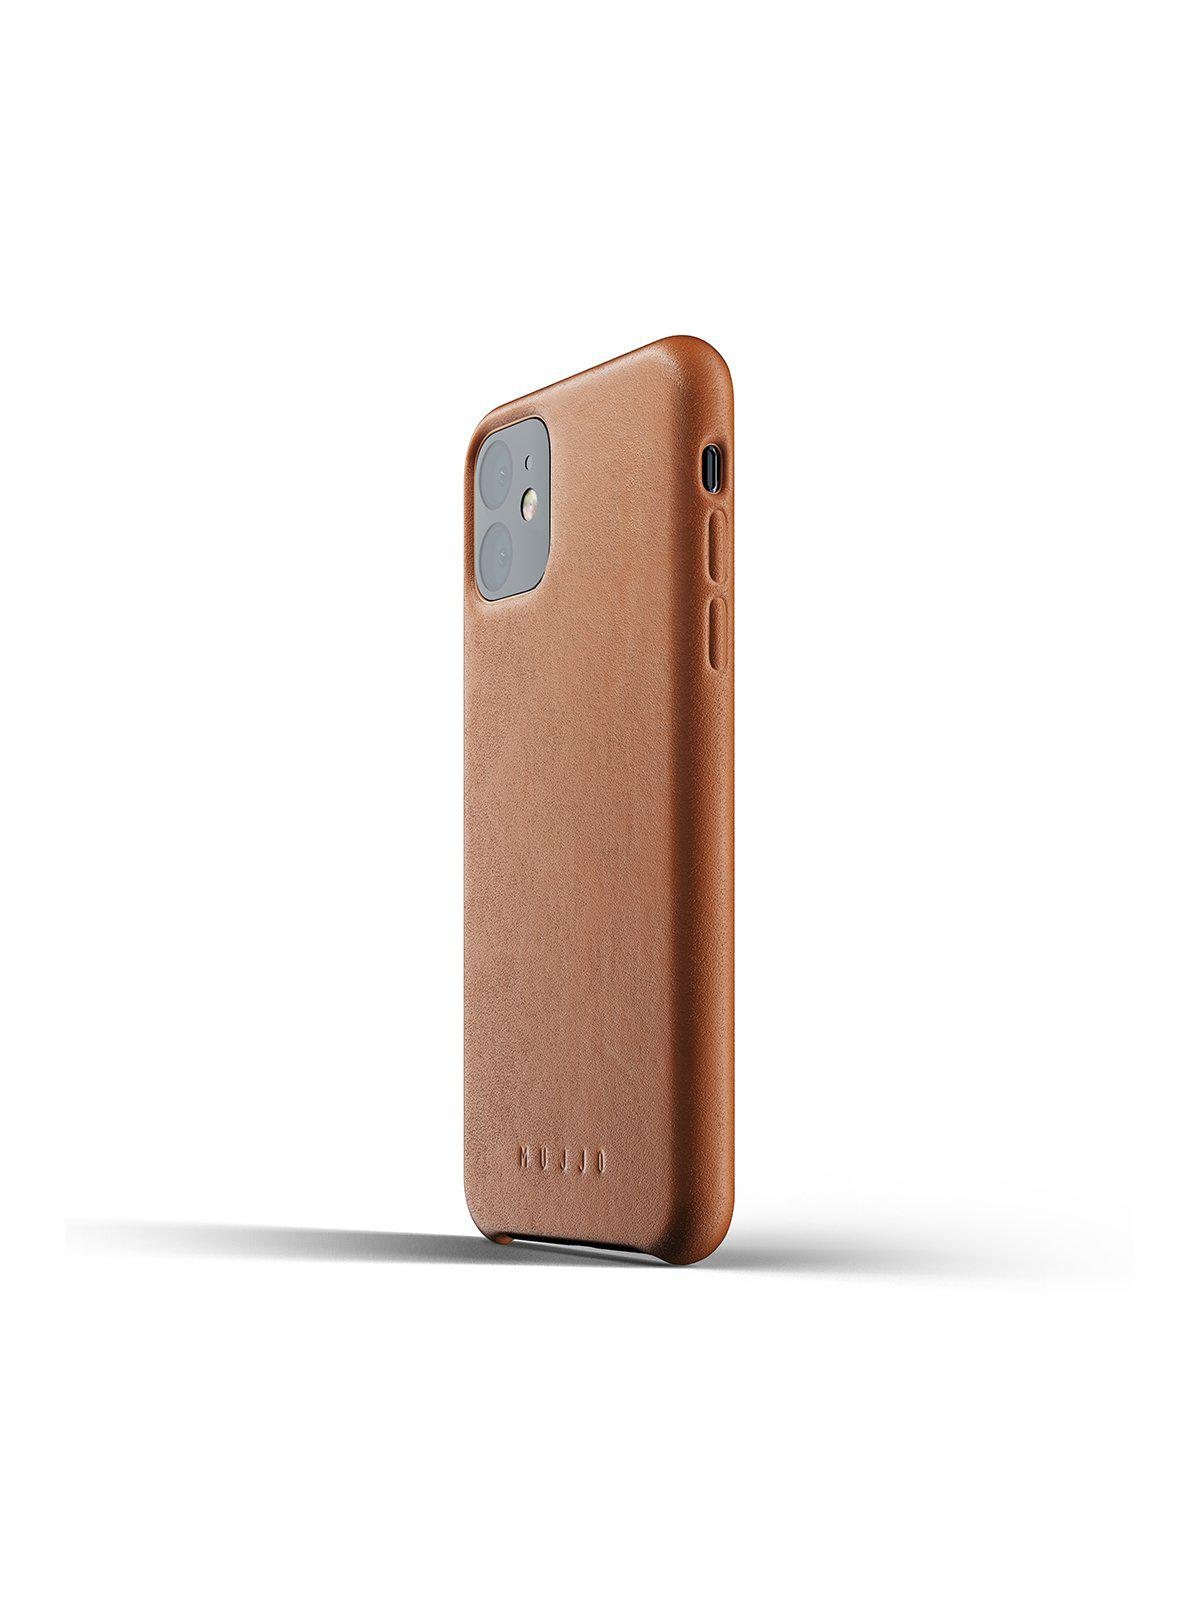 Mujjo Full Leather Case for iPhone 11 Tan - MORE by Morello Indonesia